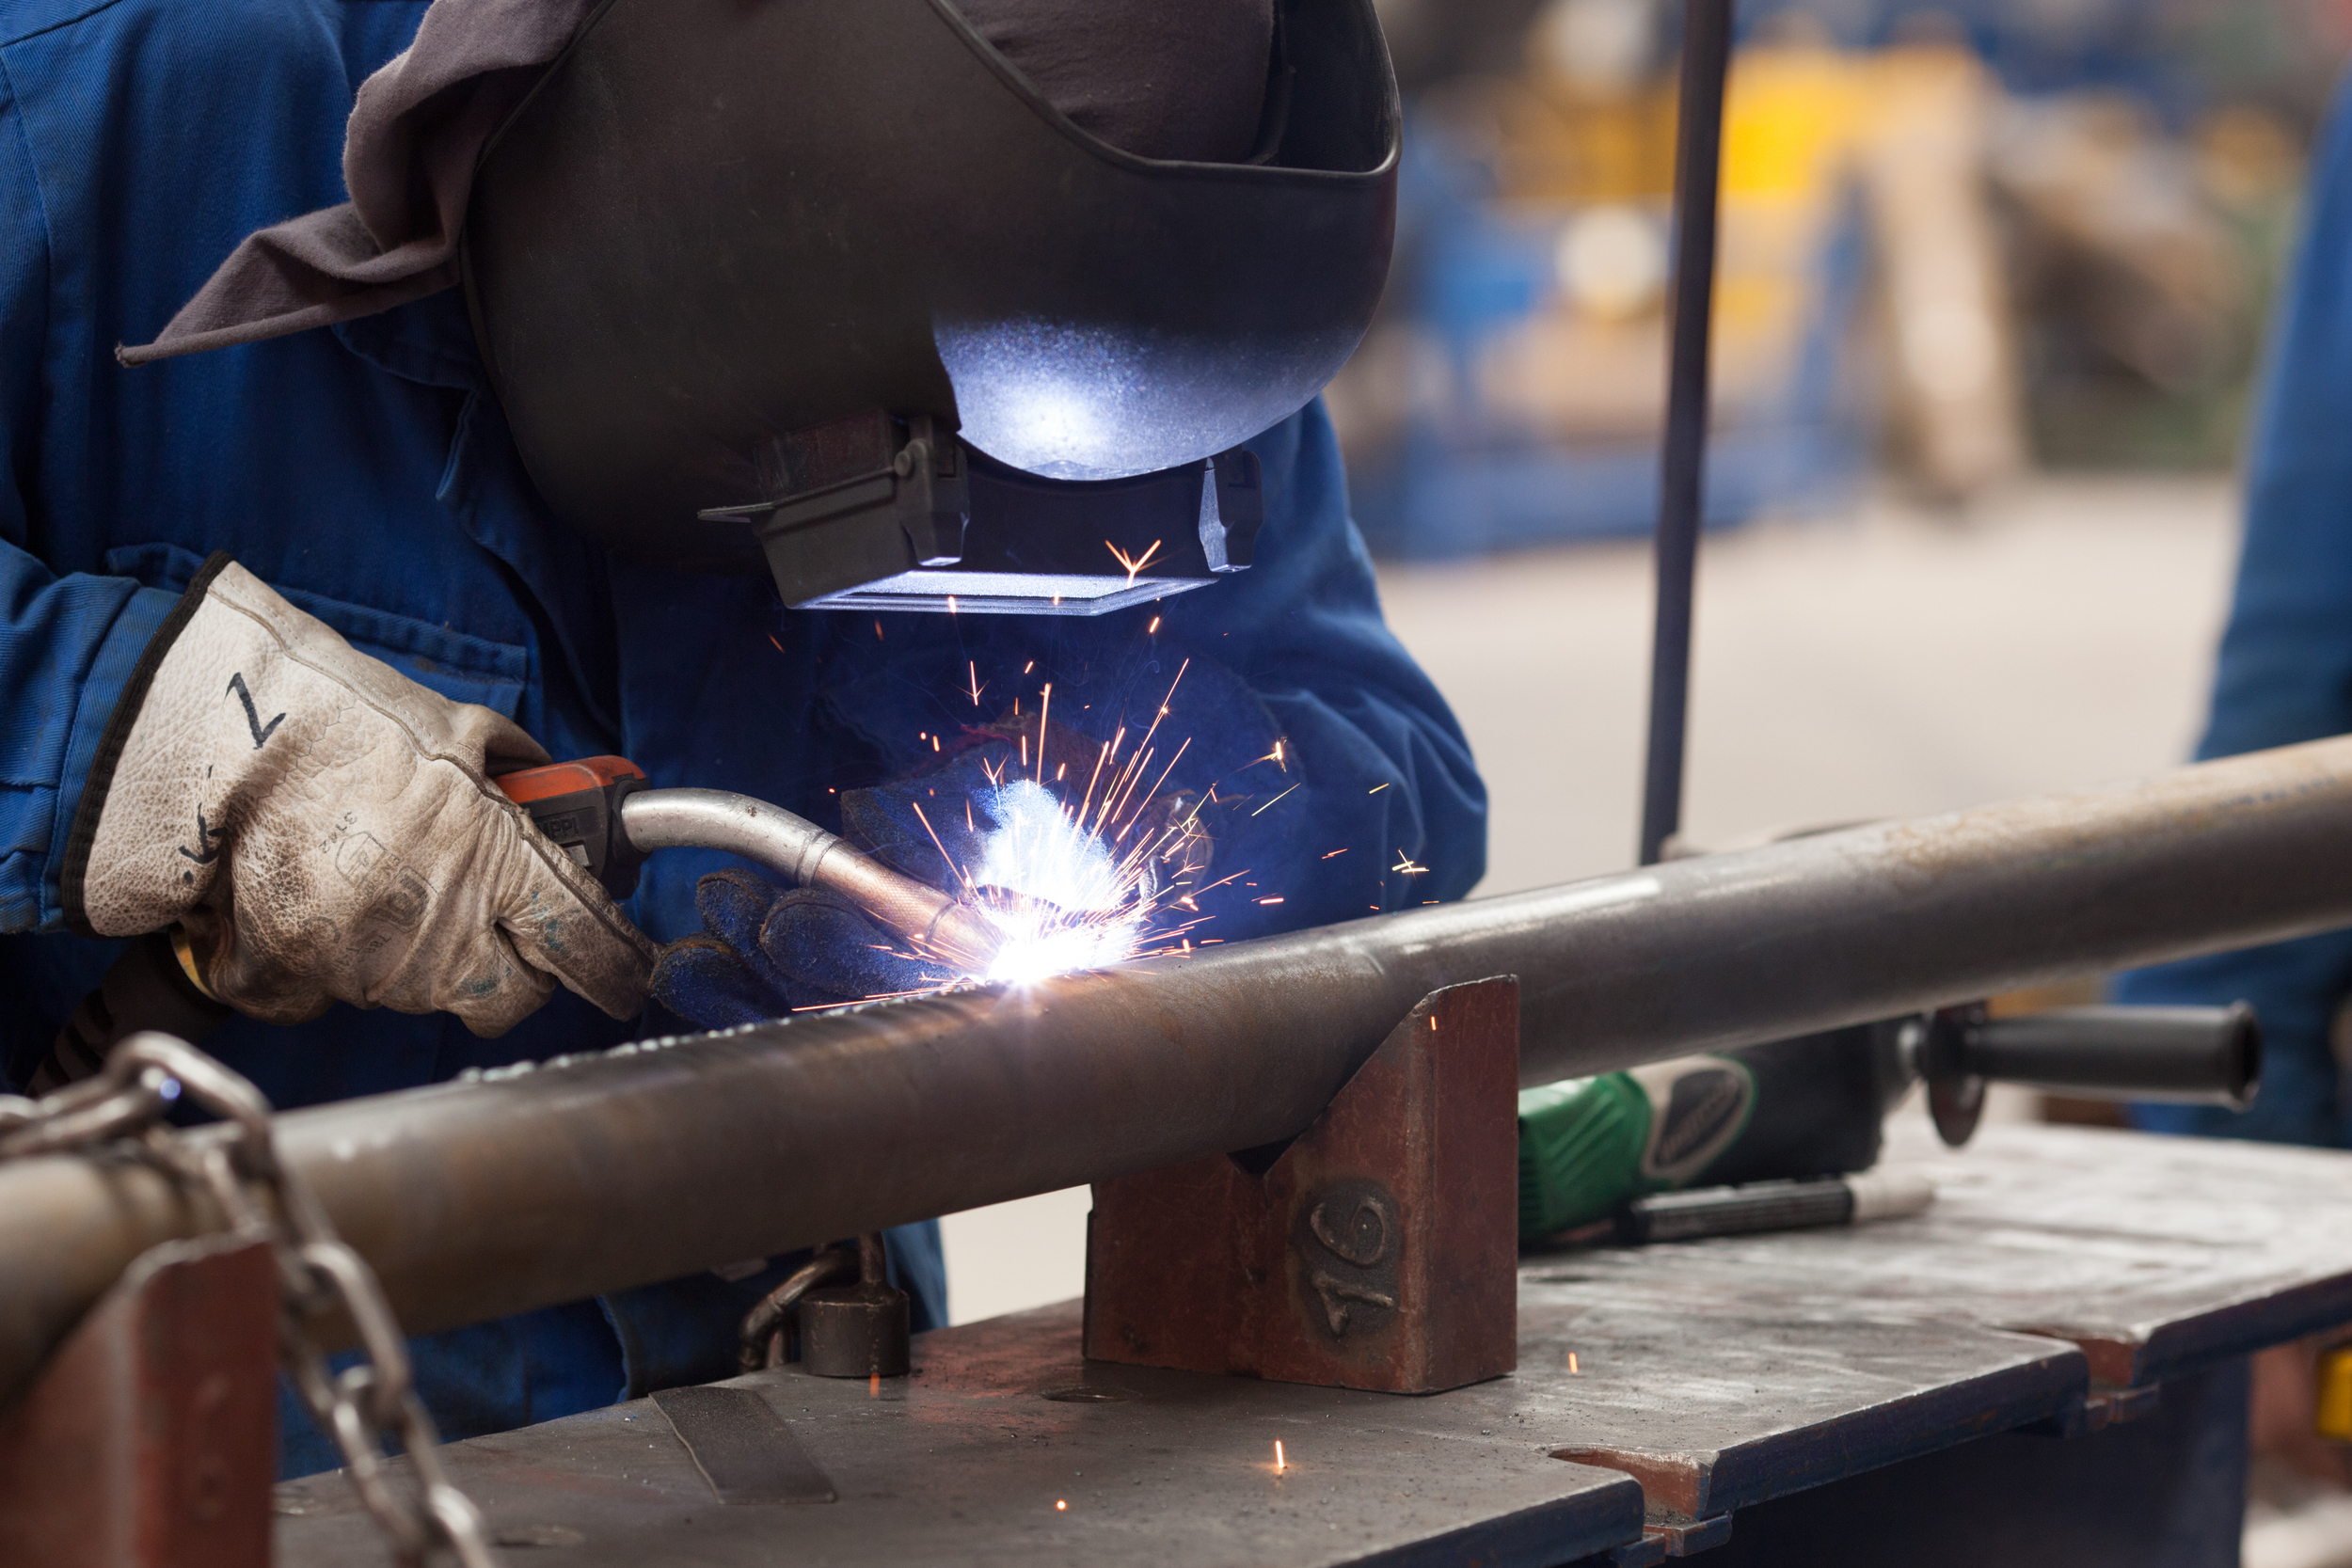 Our certified welders are proficient in MIG welding. Custom welding projects are our specialty